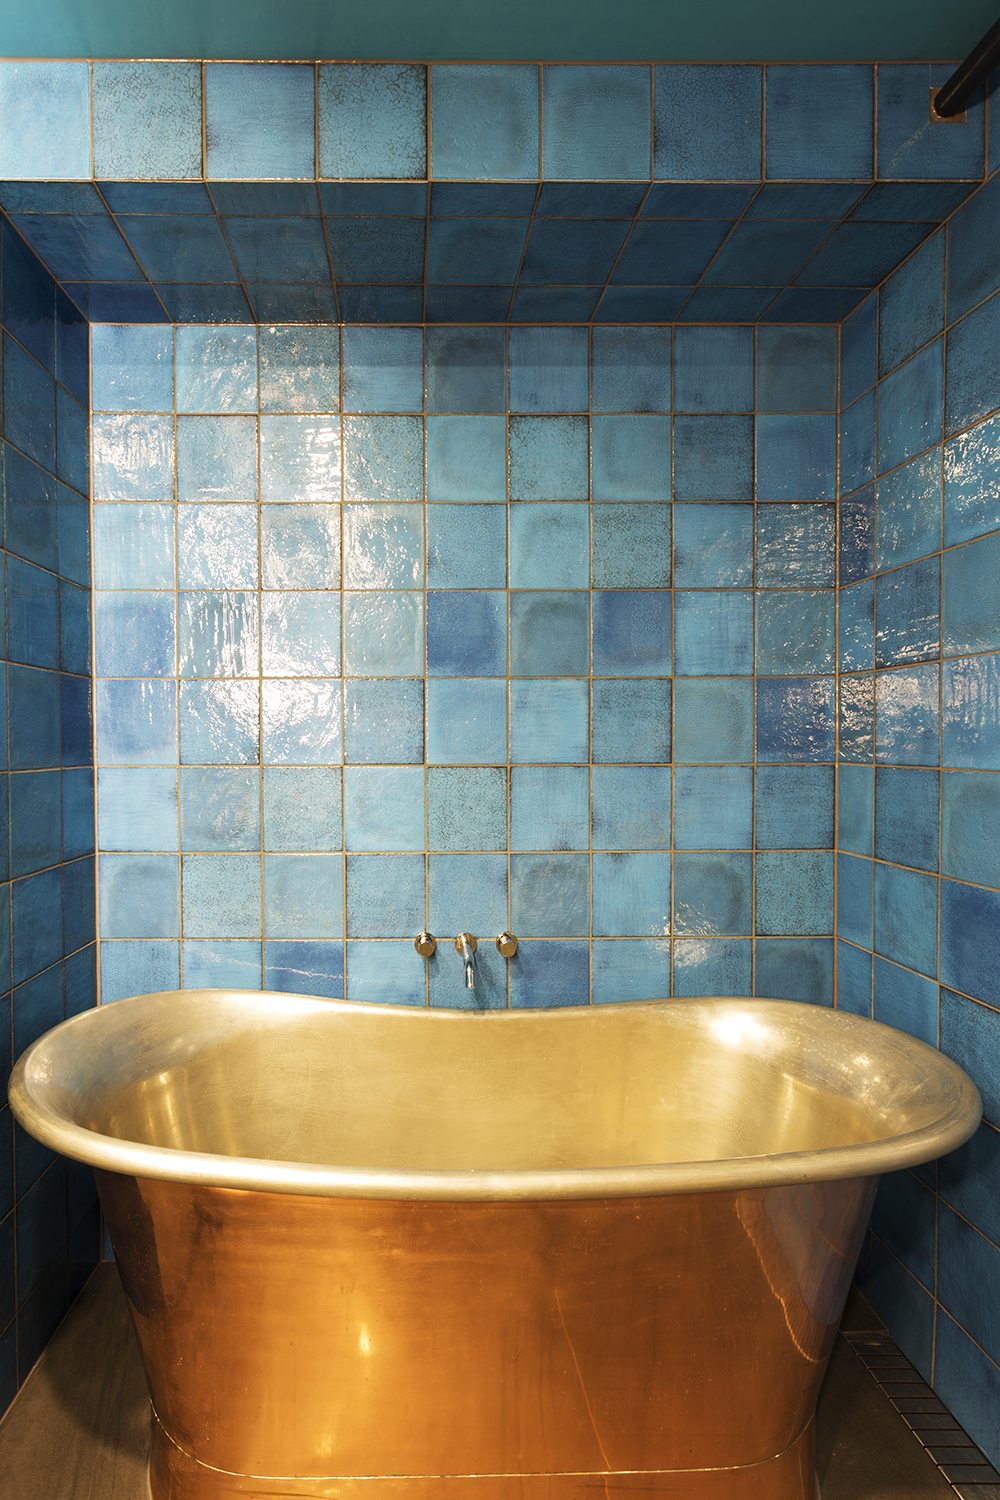 Bathroom design melbourne interior designer copper bath